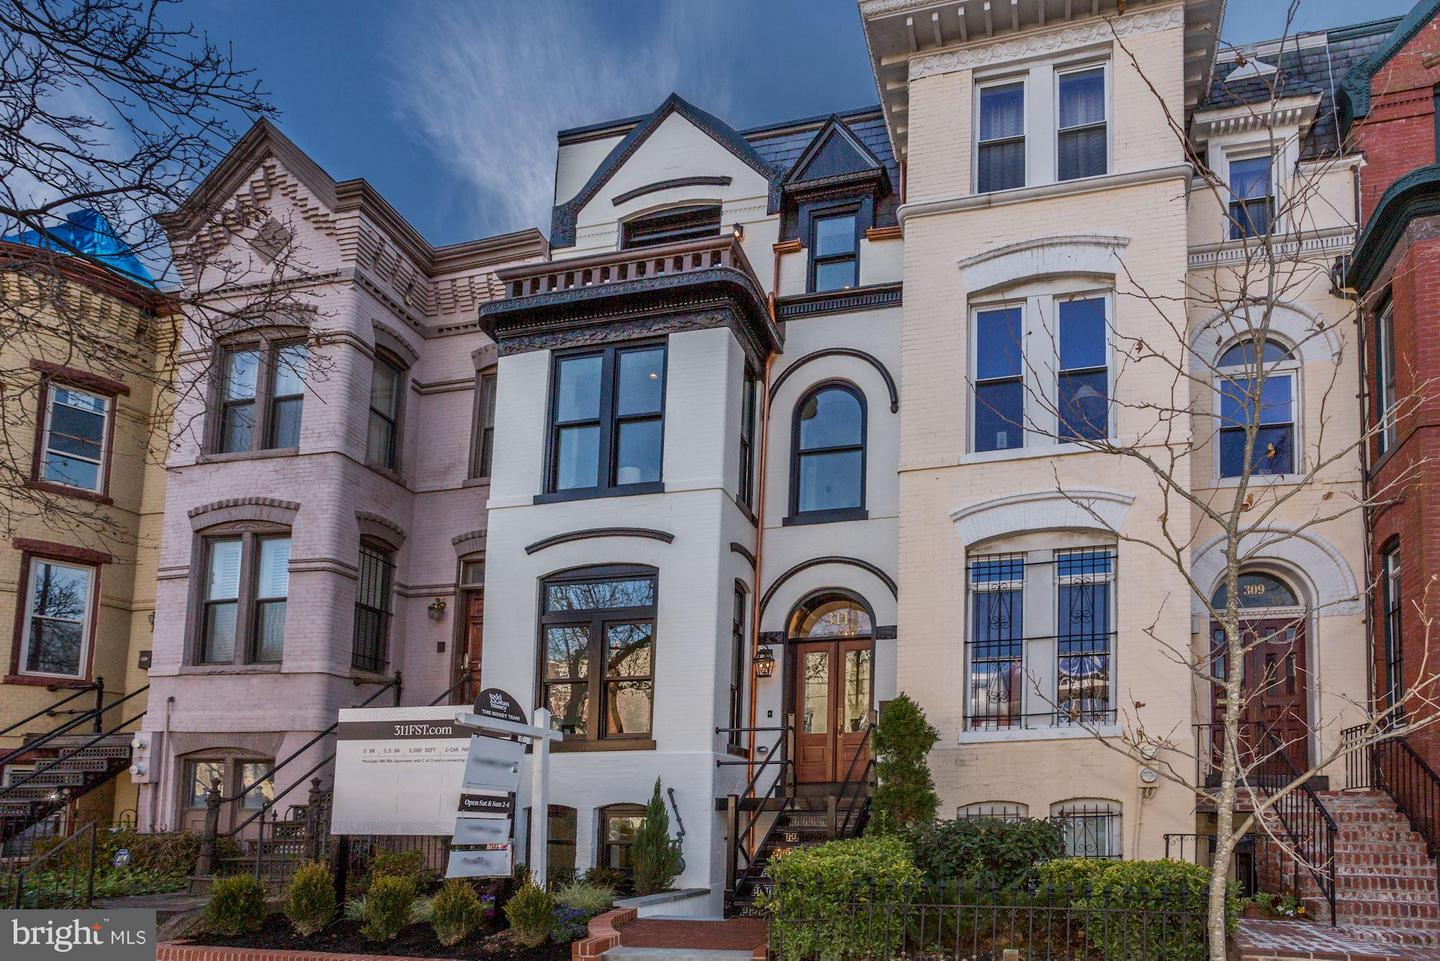 Multi-Family Home for Sale at 311 F St NE Washington, District Of Columbia 20002 United States